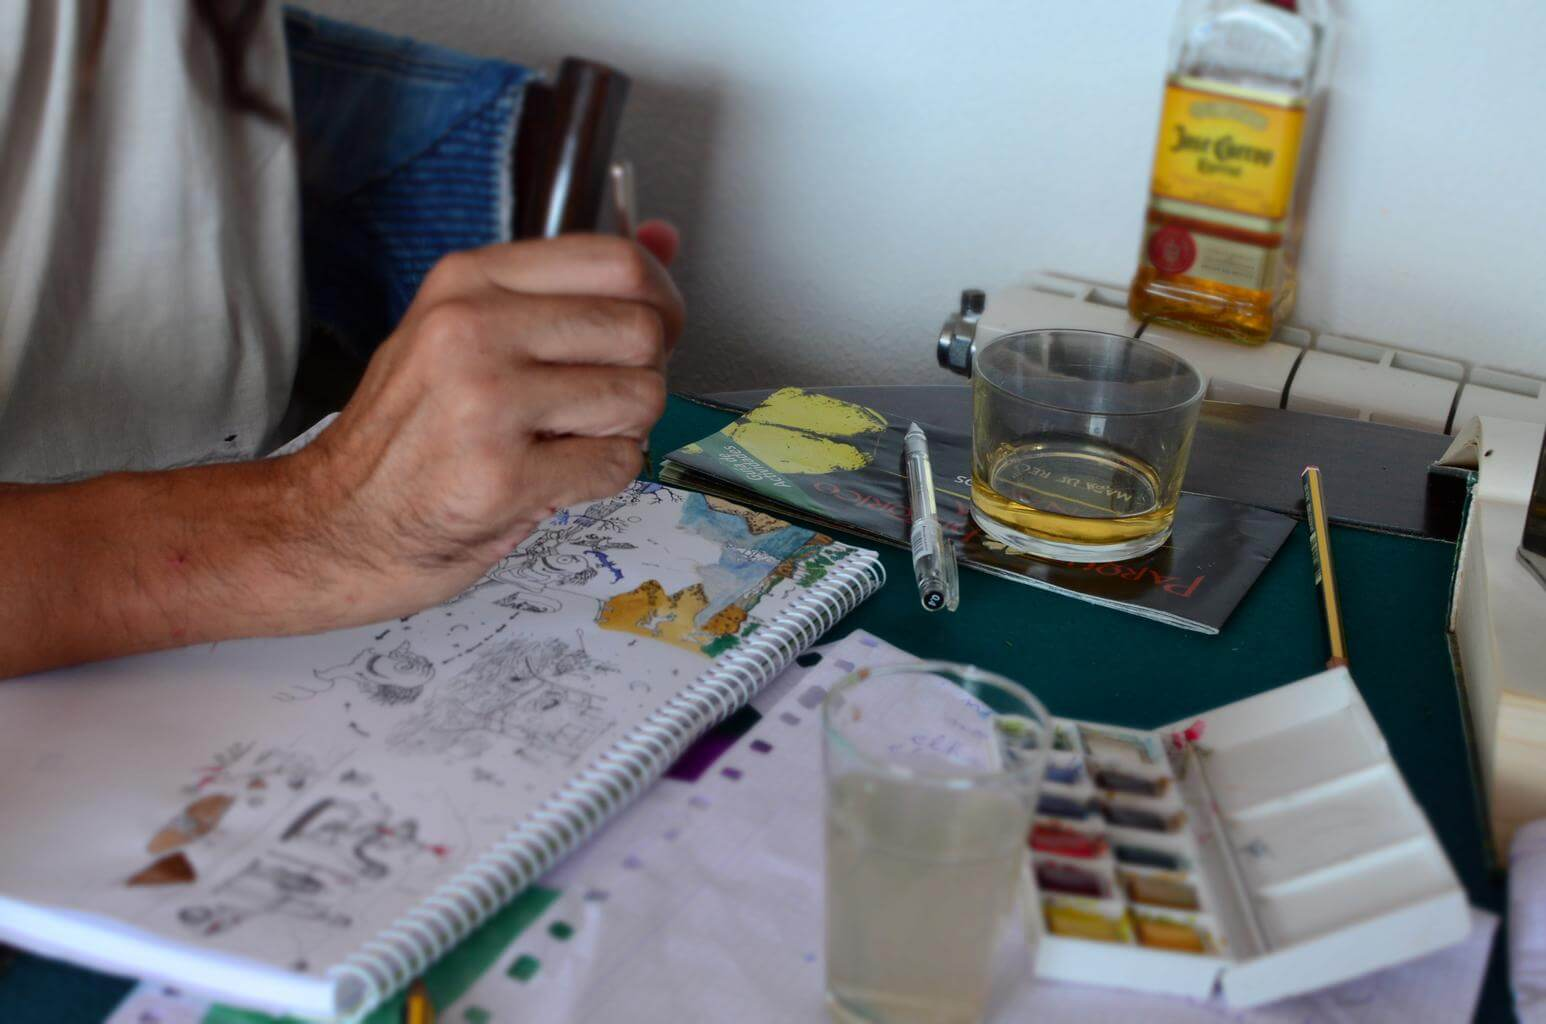 Nurture Your Creativity with These 10 Tips